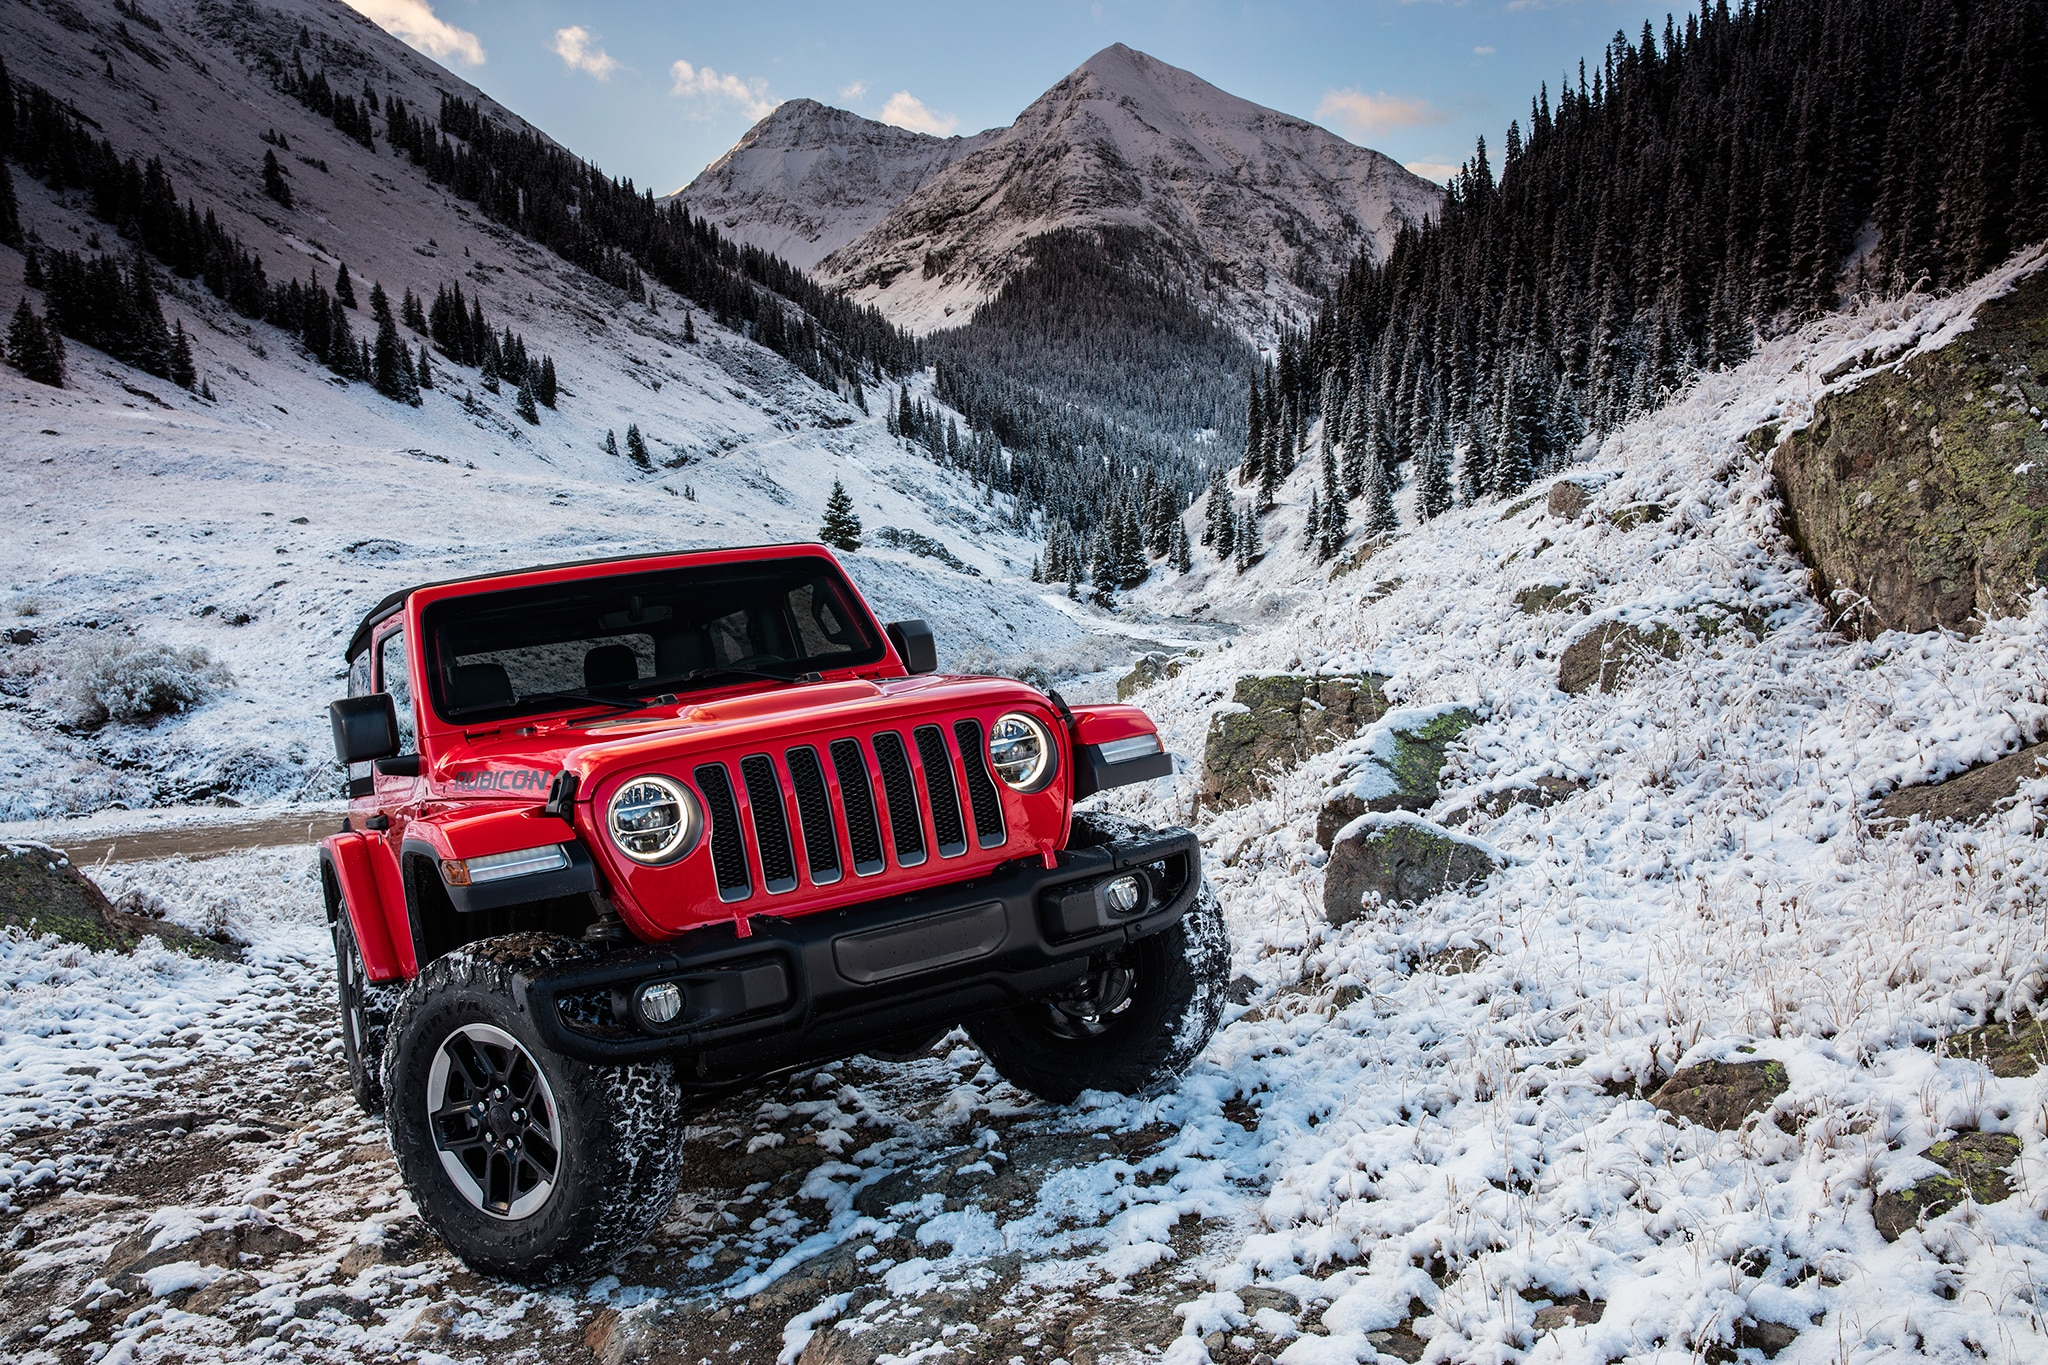 2018 jeep wrangler rubicon first drive review automobile magazine. Black Bedroom Furniture Sets. Home Design Ideas